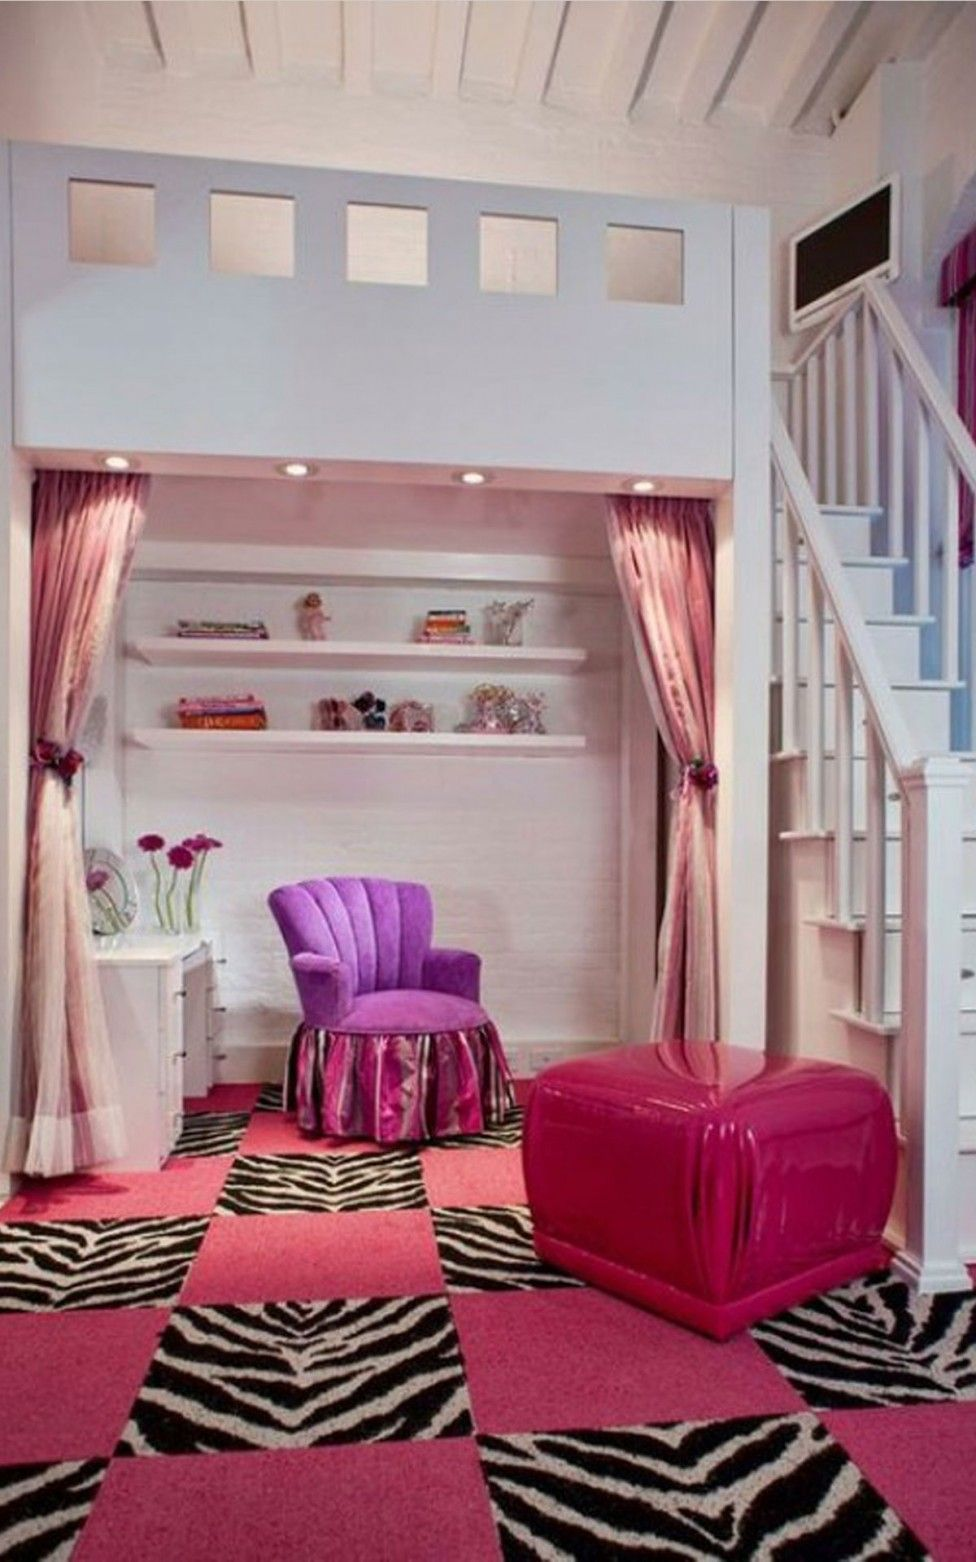 Cute bedroom ideas for teenage girls with small rooms - Small Room Ideas For Girls With Cute Color Bedroom 22 Pretty Girls Room Design Room Layouts